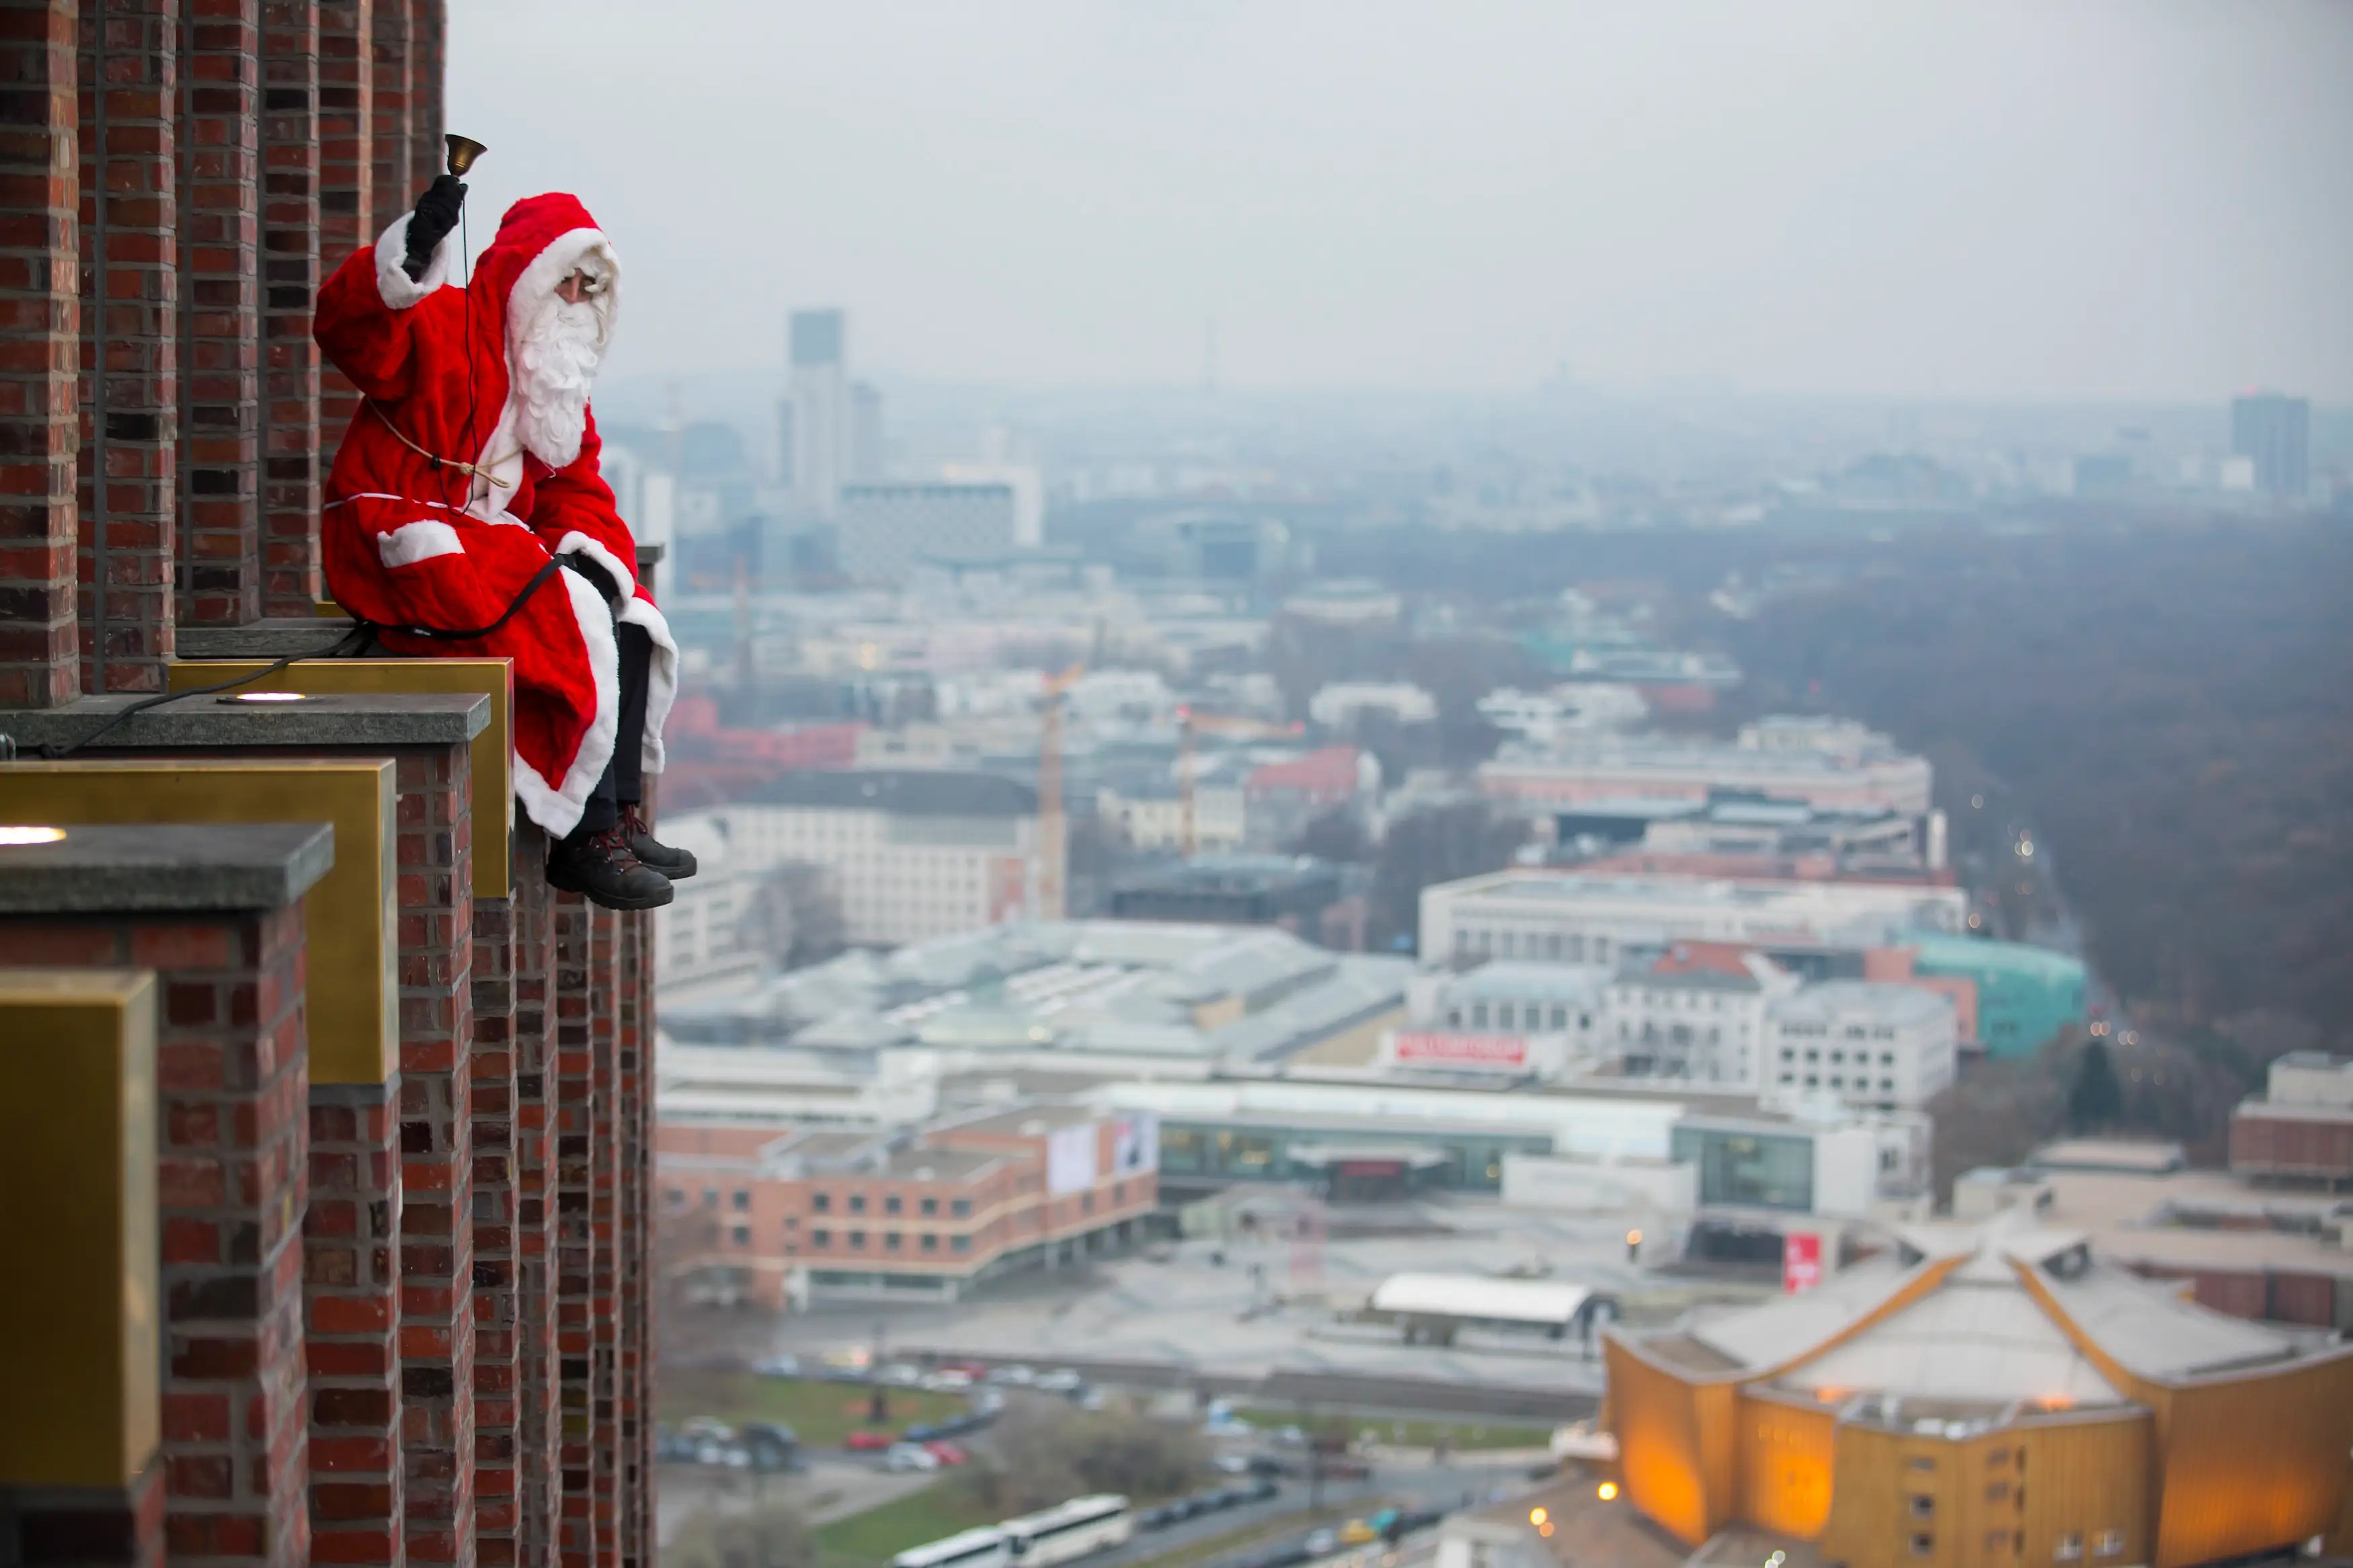 A man dressed as a Santa Claus poses at the front of the Kollhoff Tower at Potsdamer Platz square in Berlin.